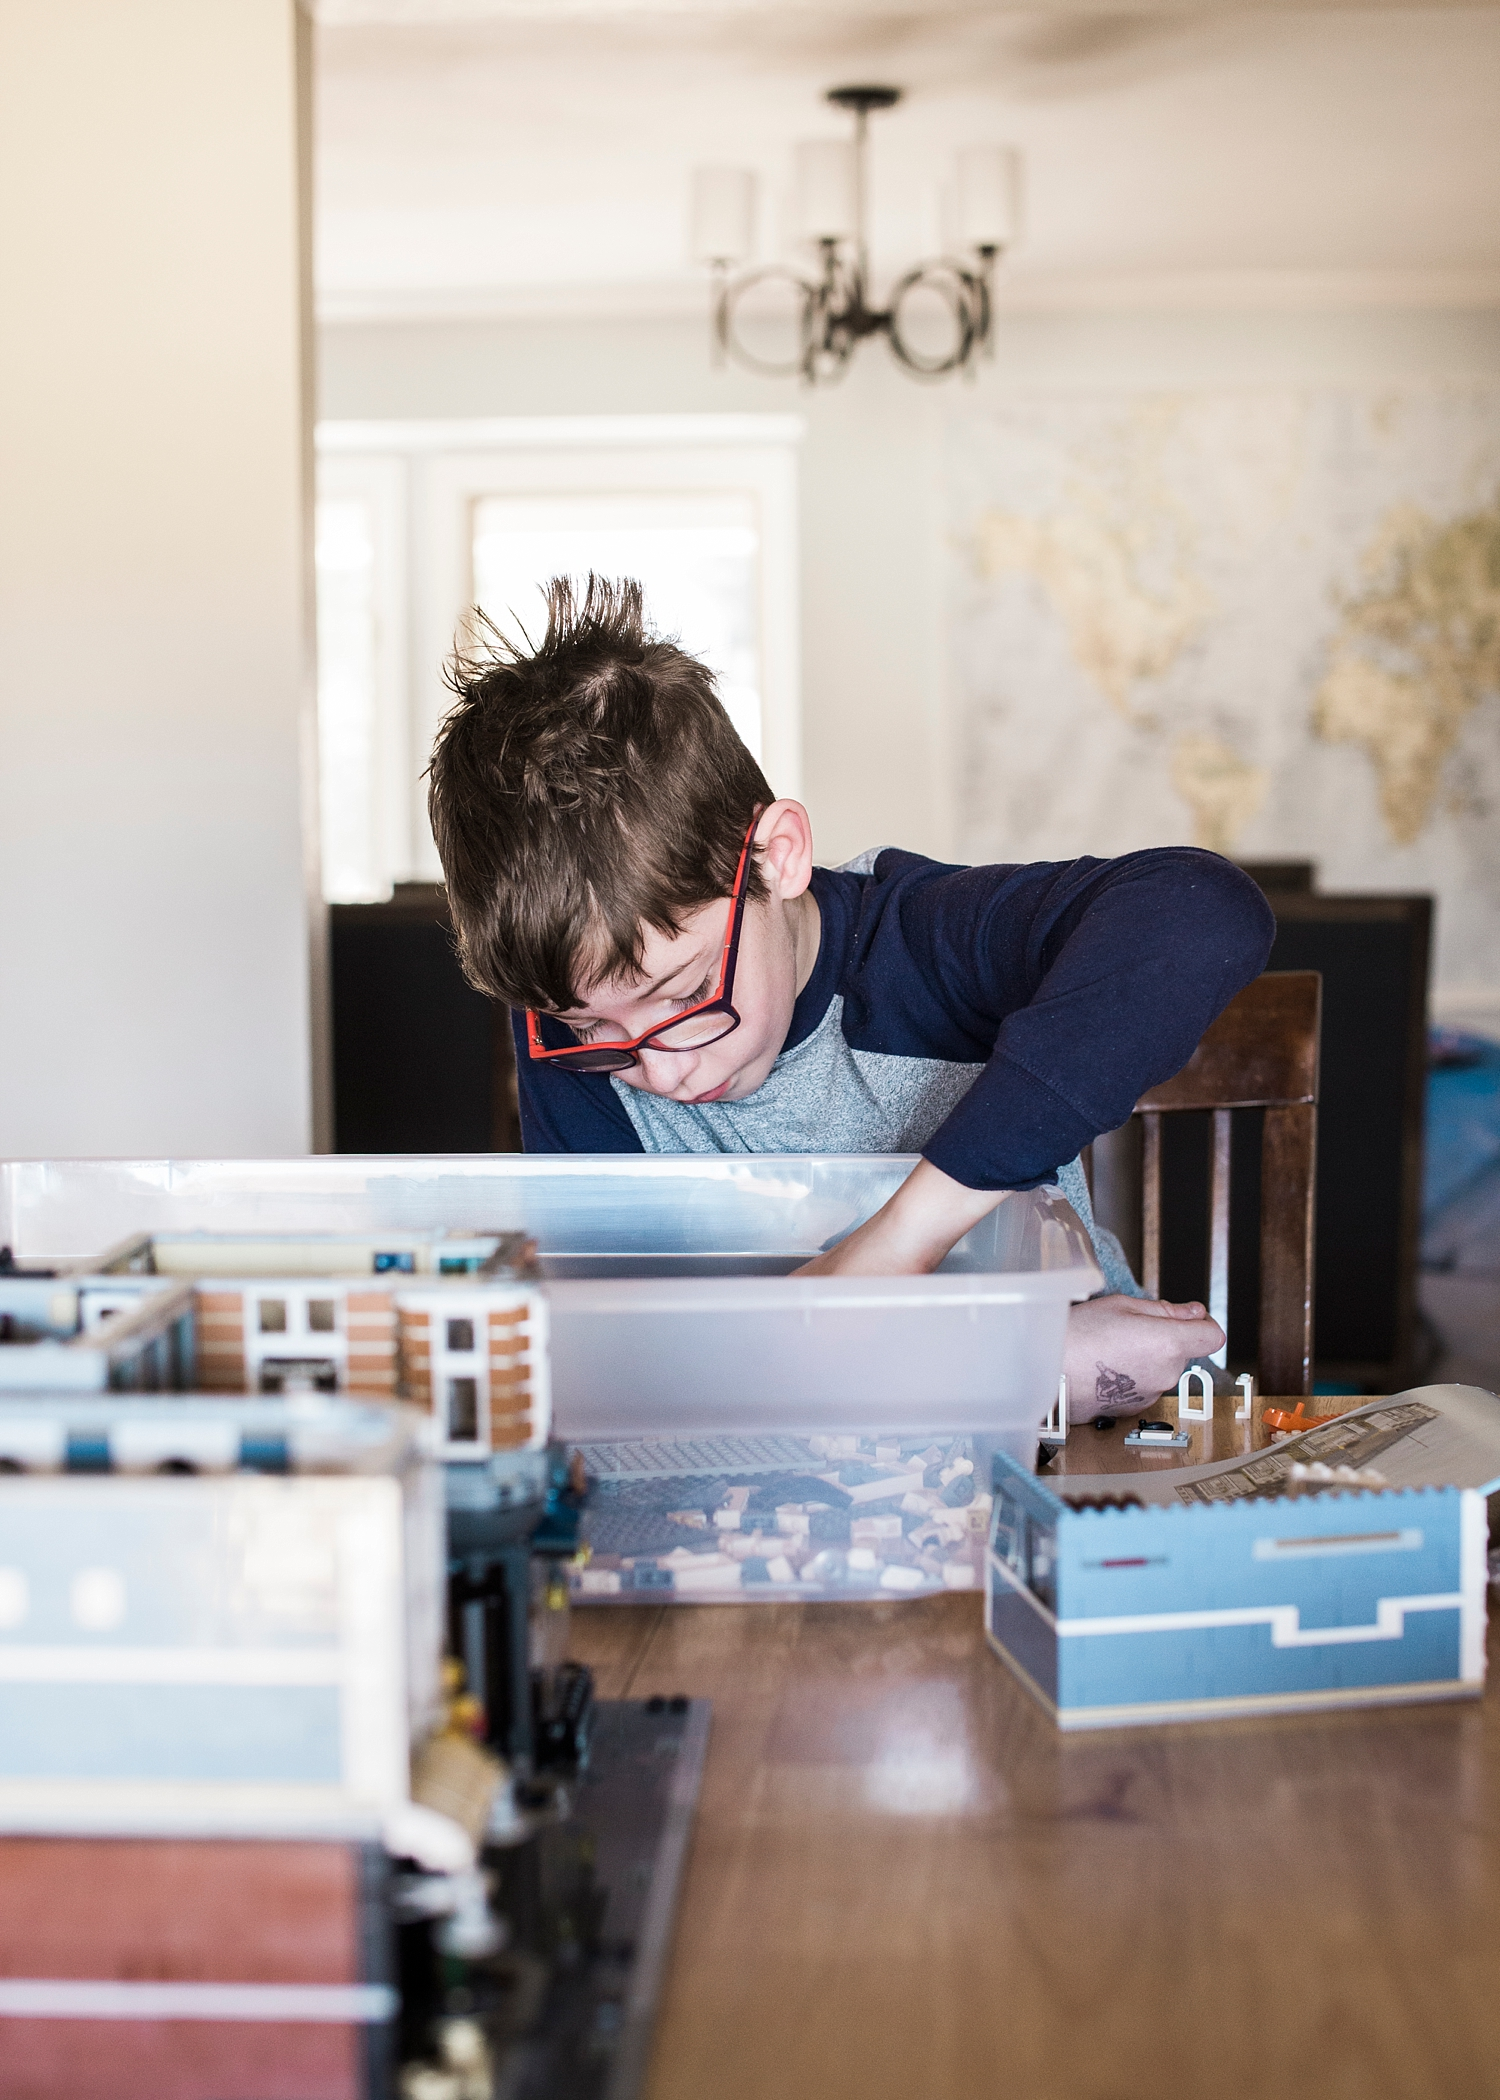 The LEGO creator expert assembly square has been kicking our butts, but we are determined to finish it!! I see now why it is recommended for kids over the age of 16 :) Come see what else we're doing in this week's Week in the Life of an Unschooler.